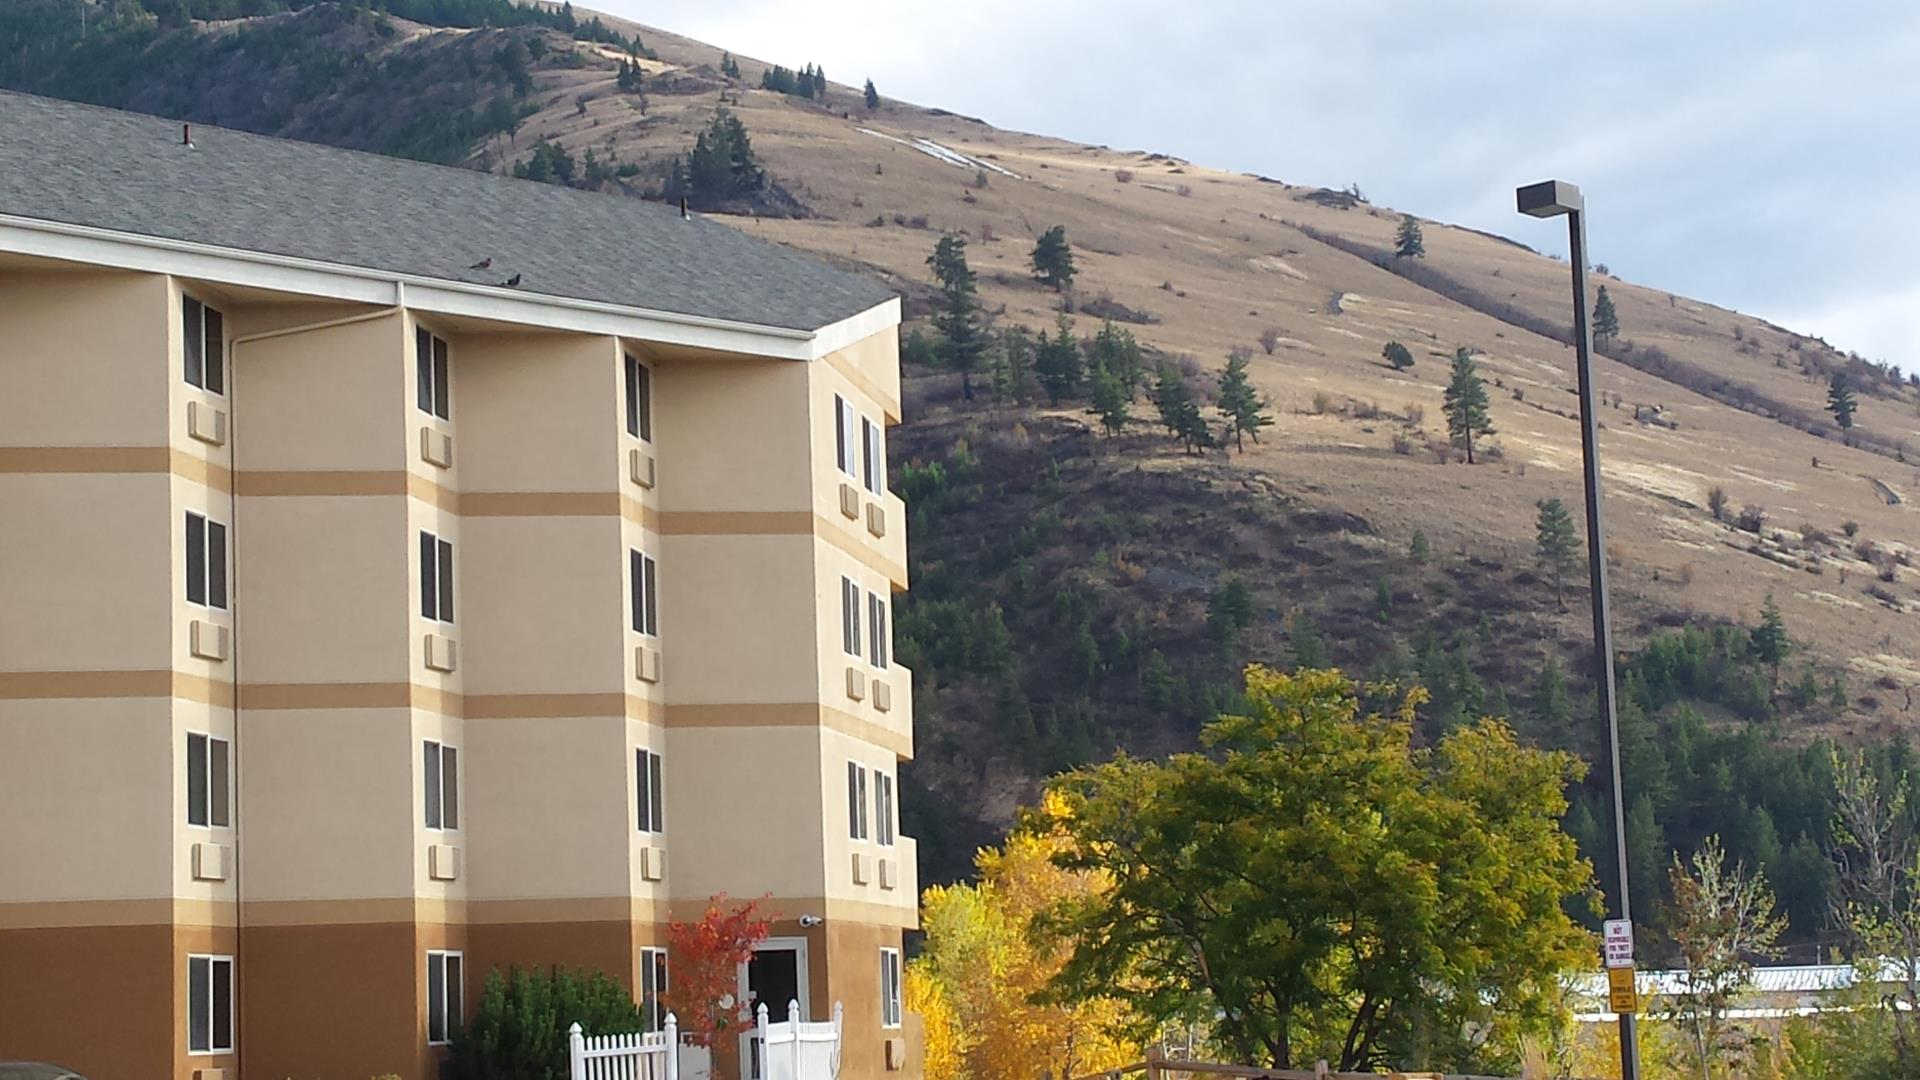 Hotel and M in Missoula.